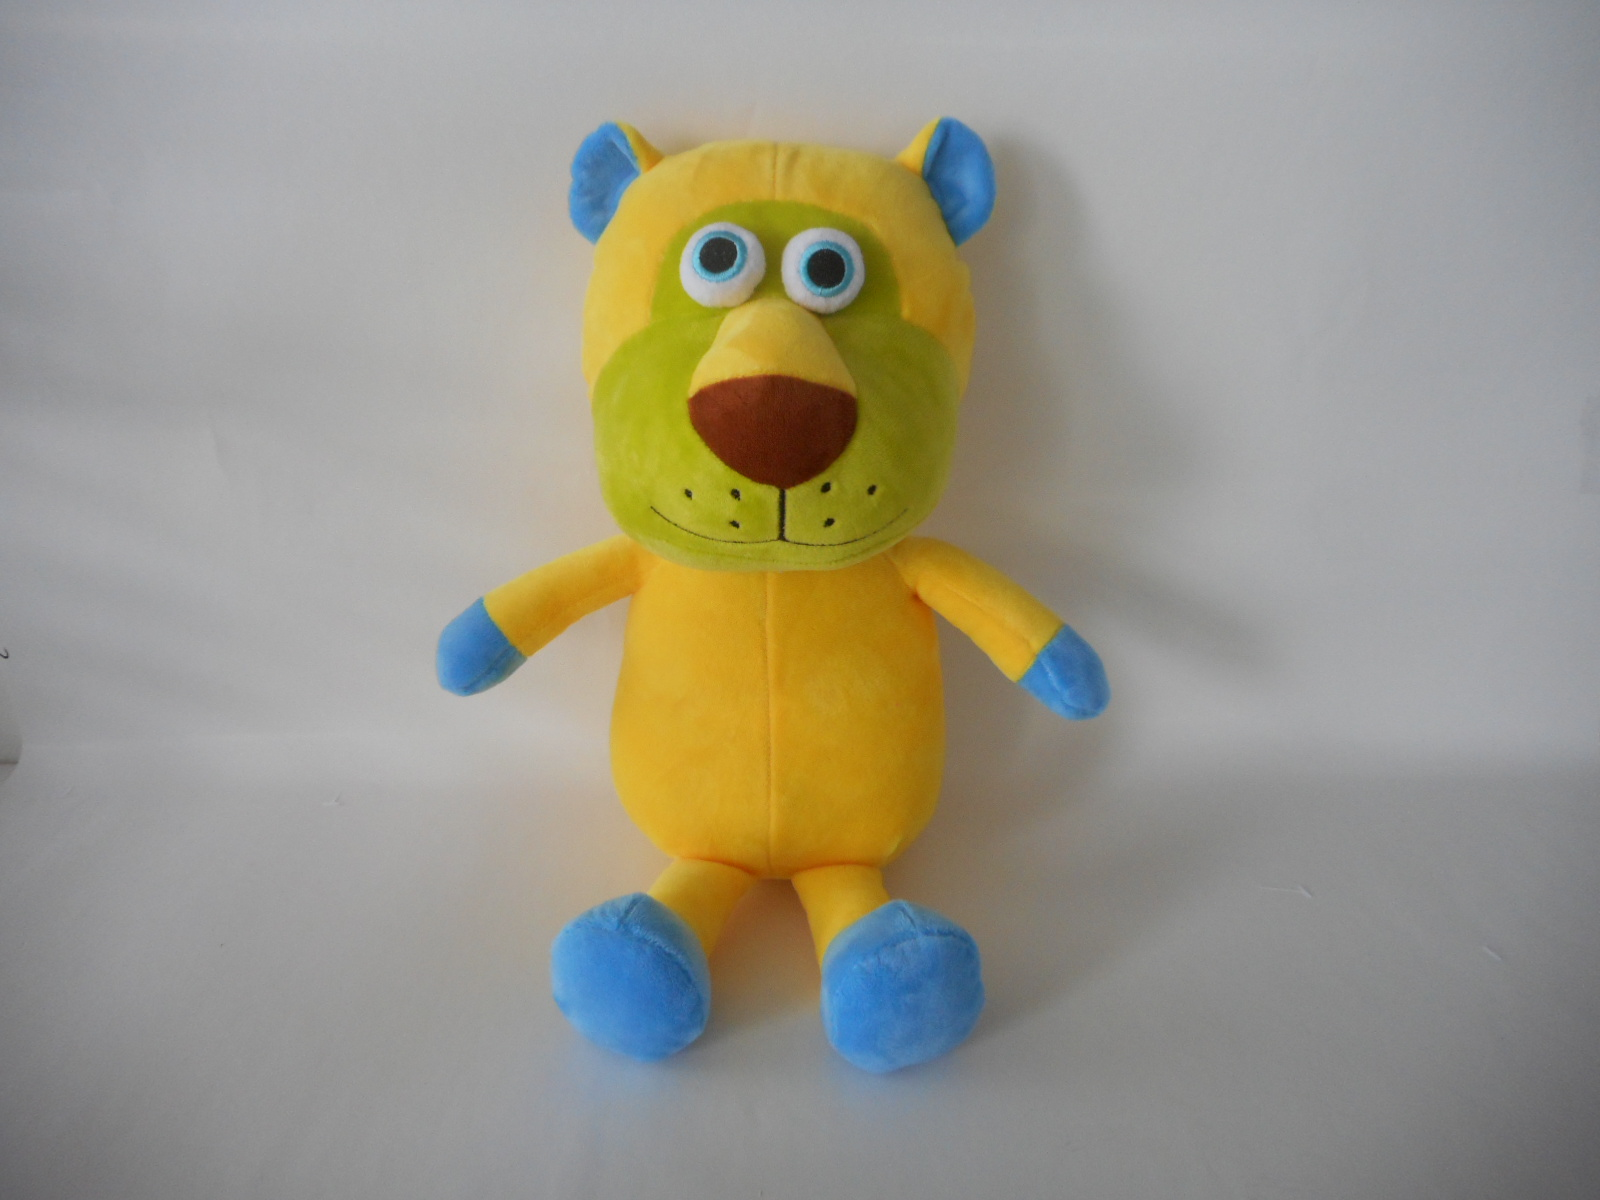 Yellow Cute Cartoon 3D Big Eyes Plush Toy Animals